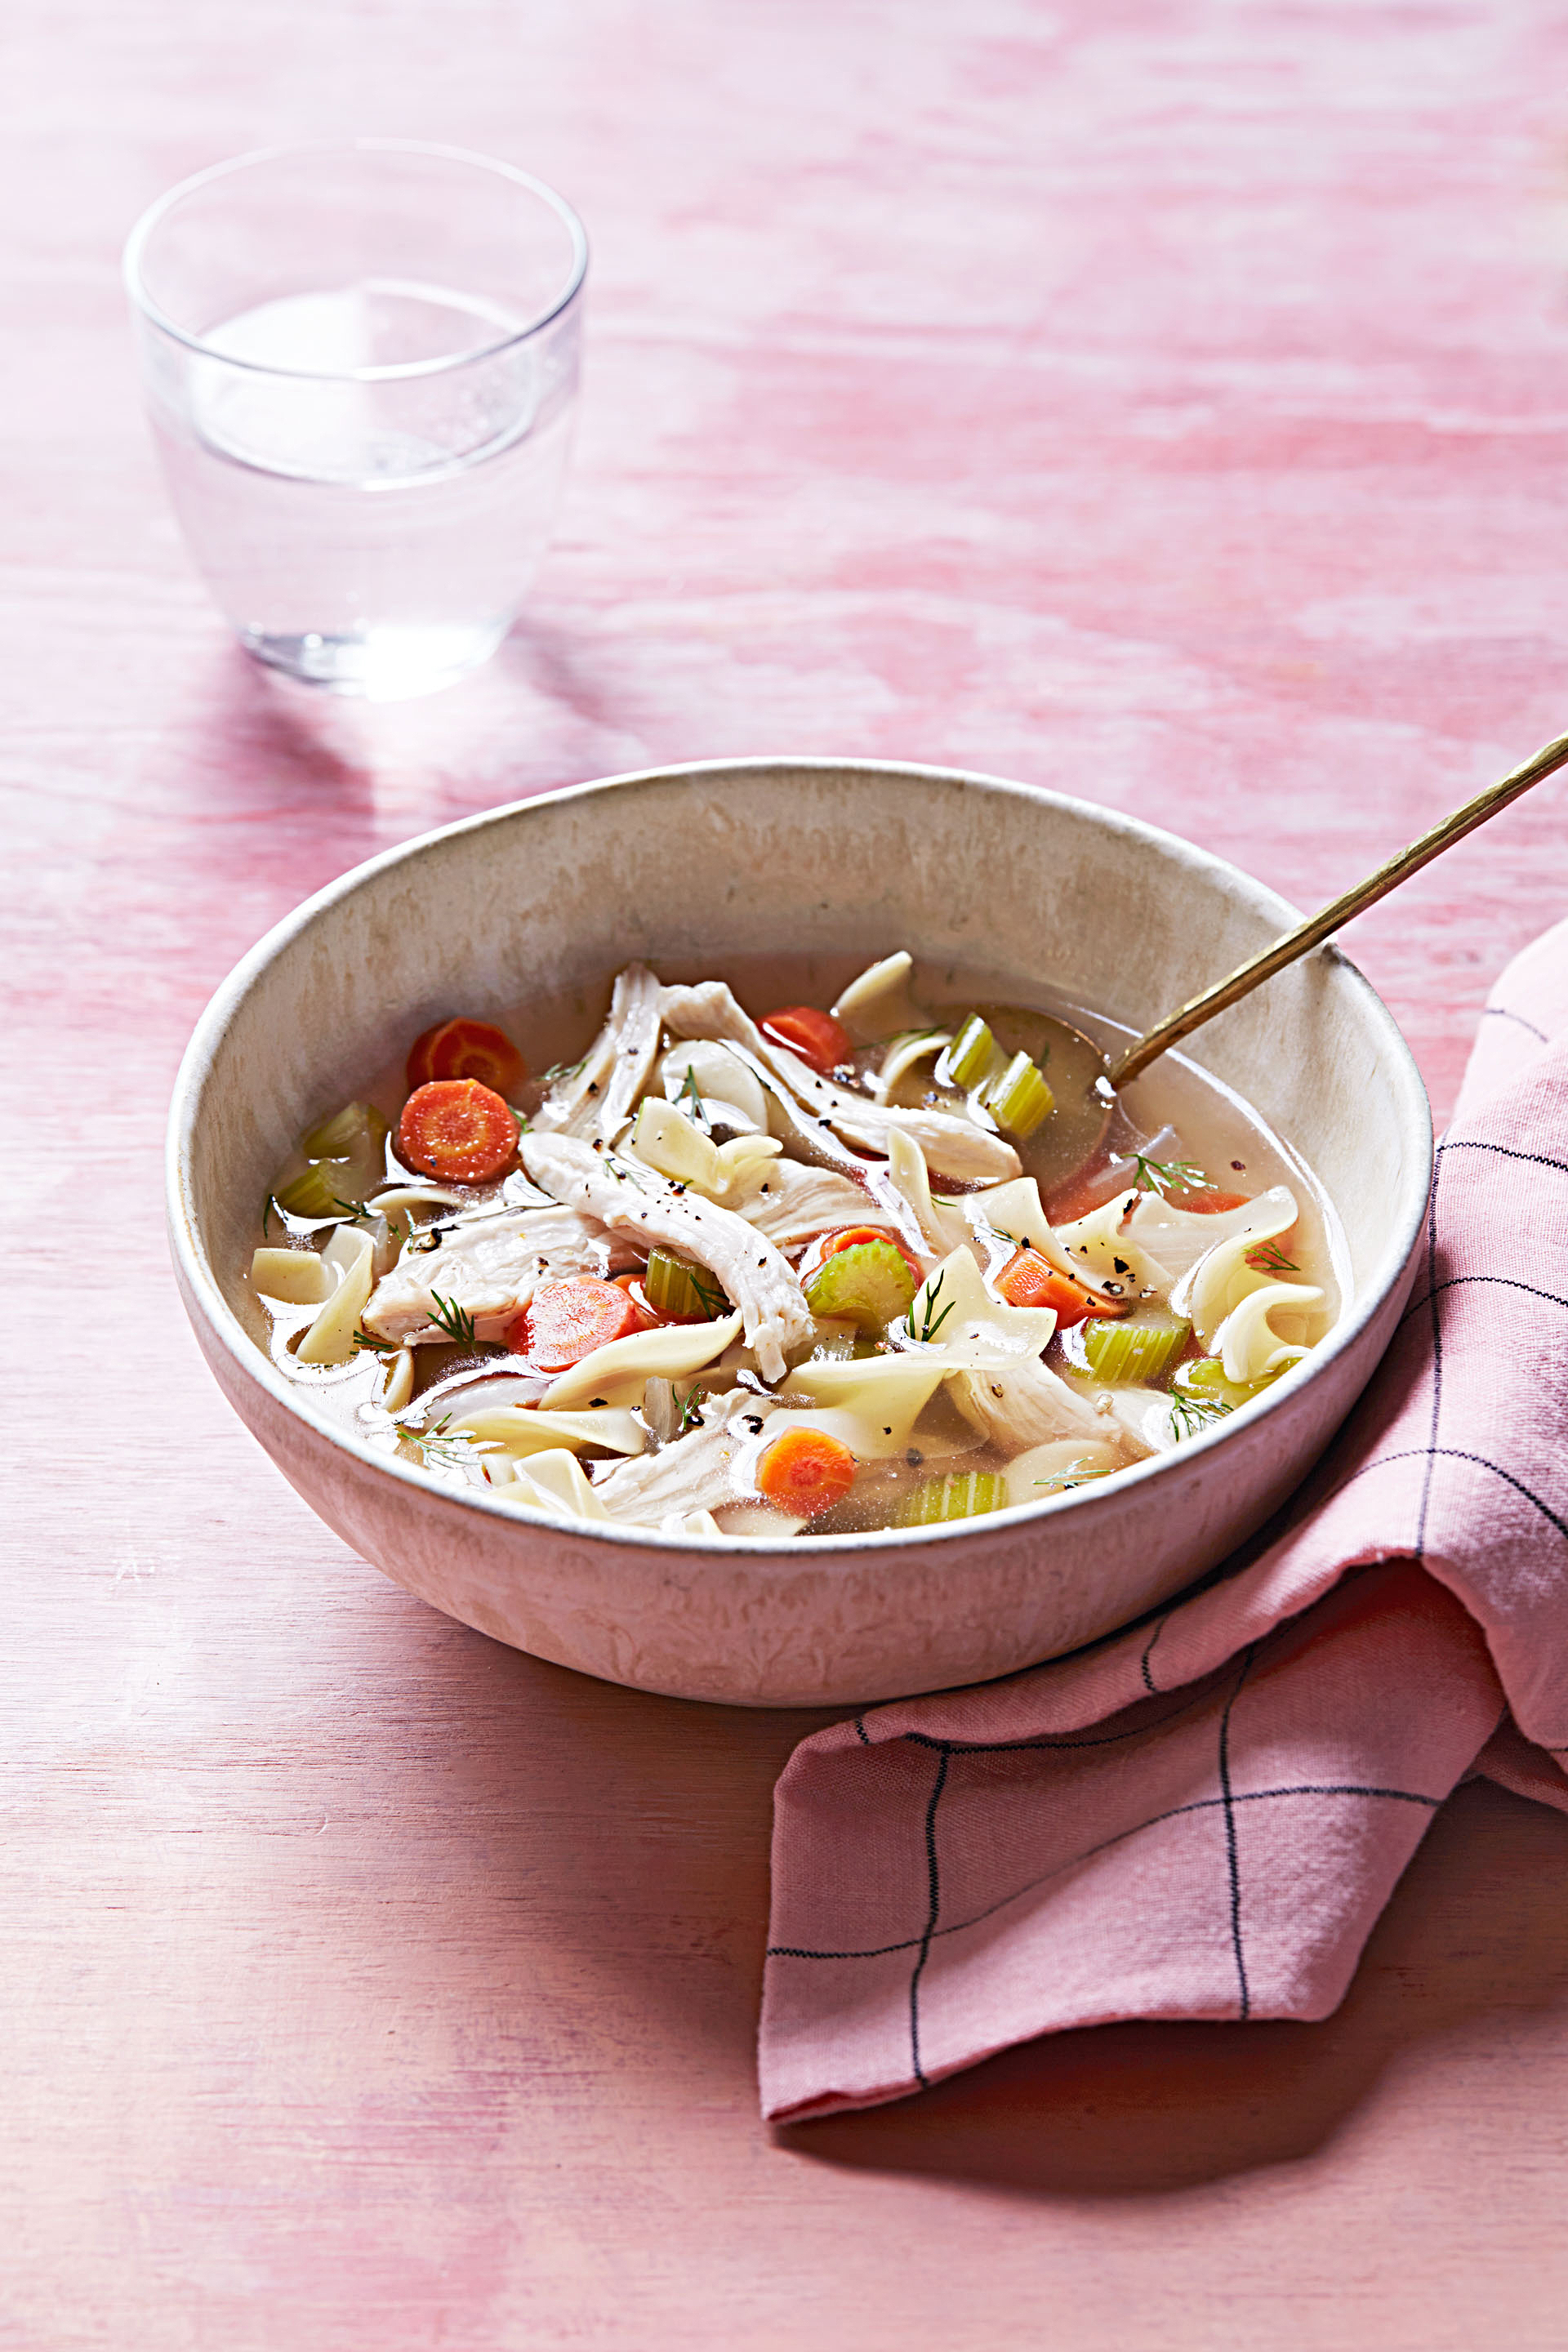 Test Kitchen's Favorite Chicken Soup Made with a Whole Chicken